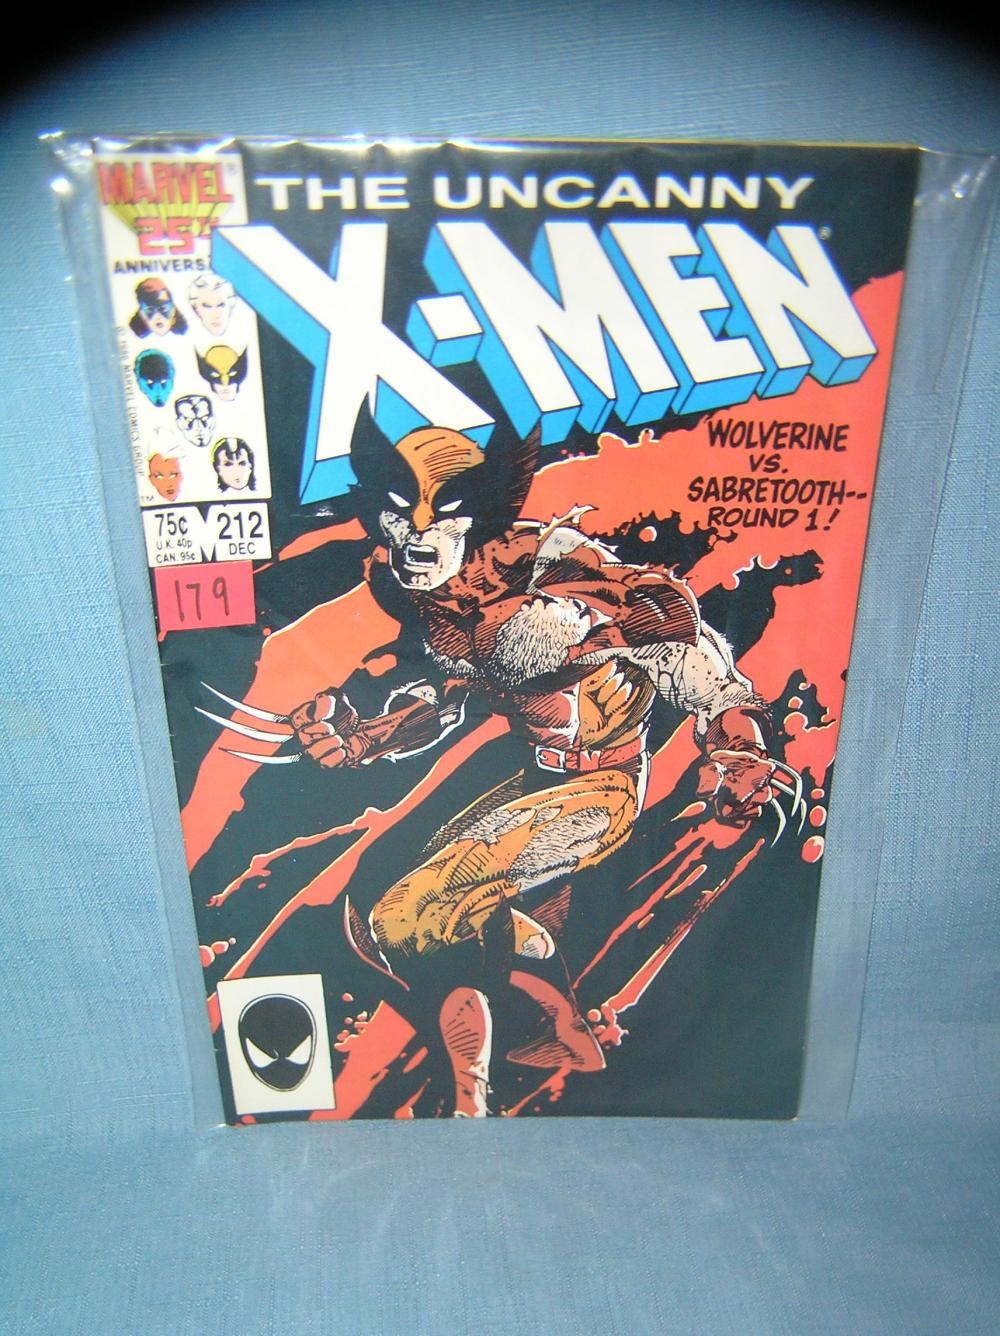 XMEN COMIC BOOK FEATURING WOLVERINE VS SABERTOOTH